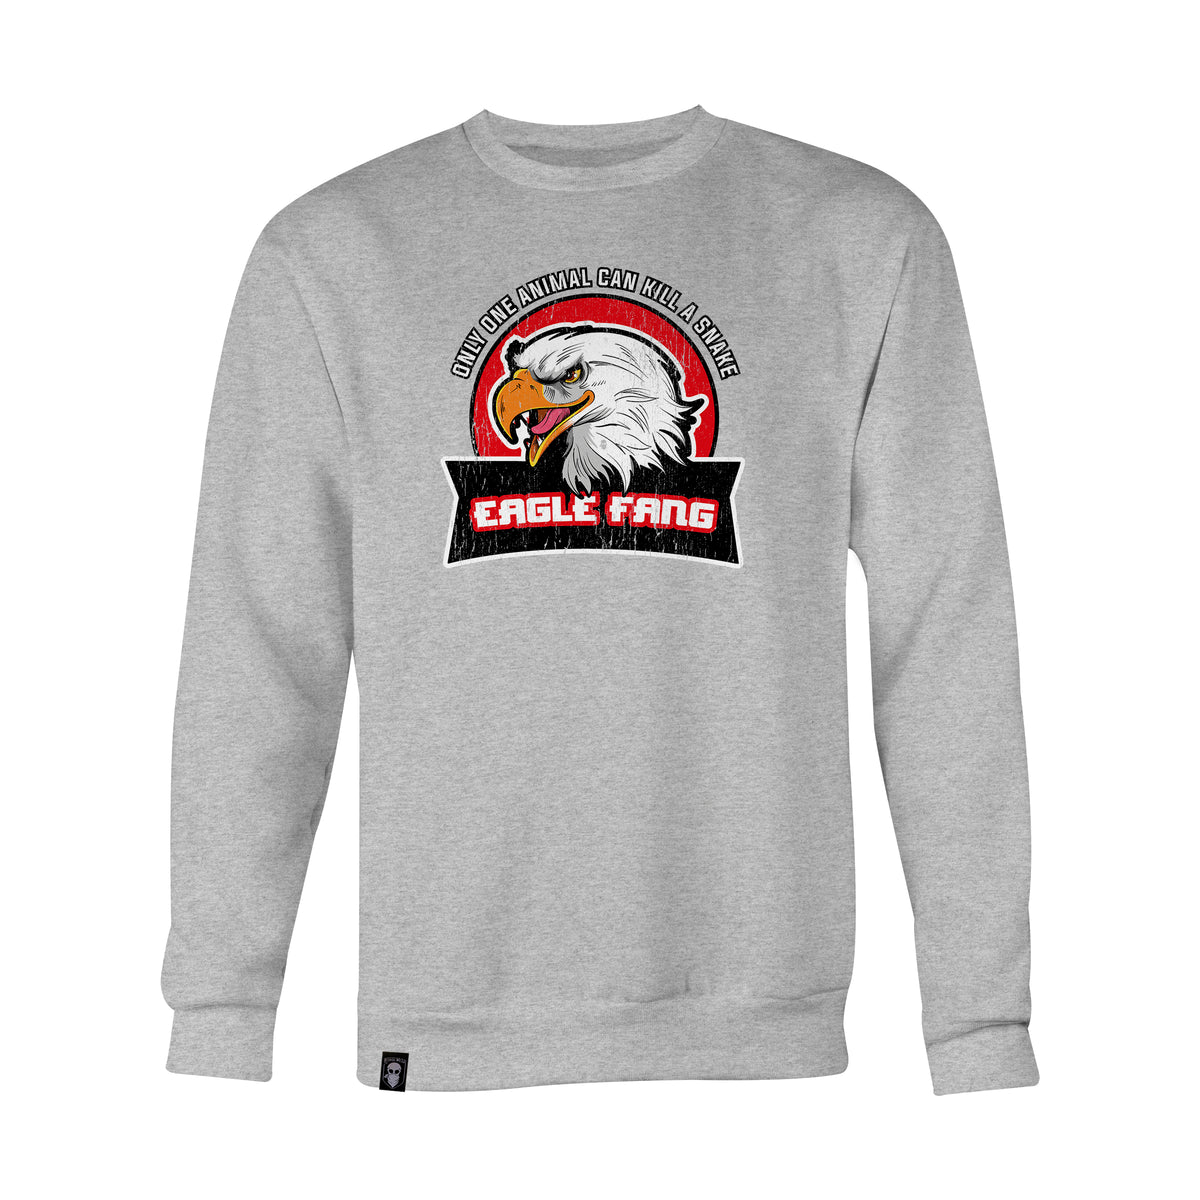 EAGLE FANG SWEAT